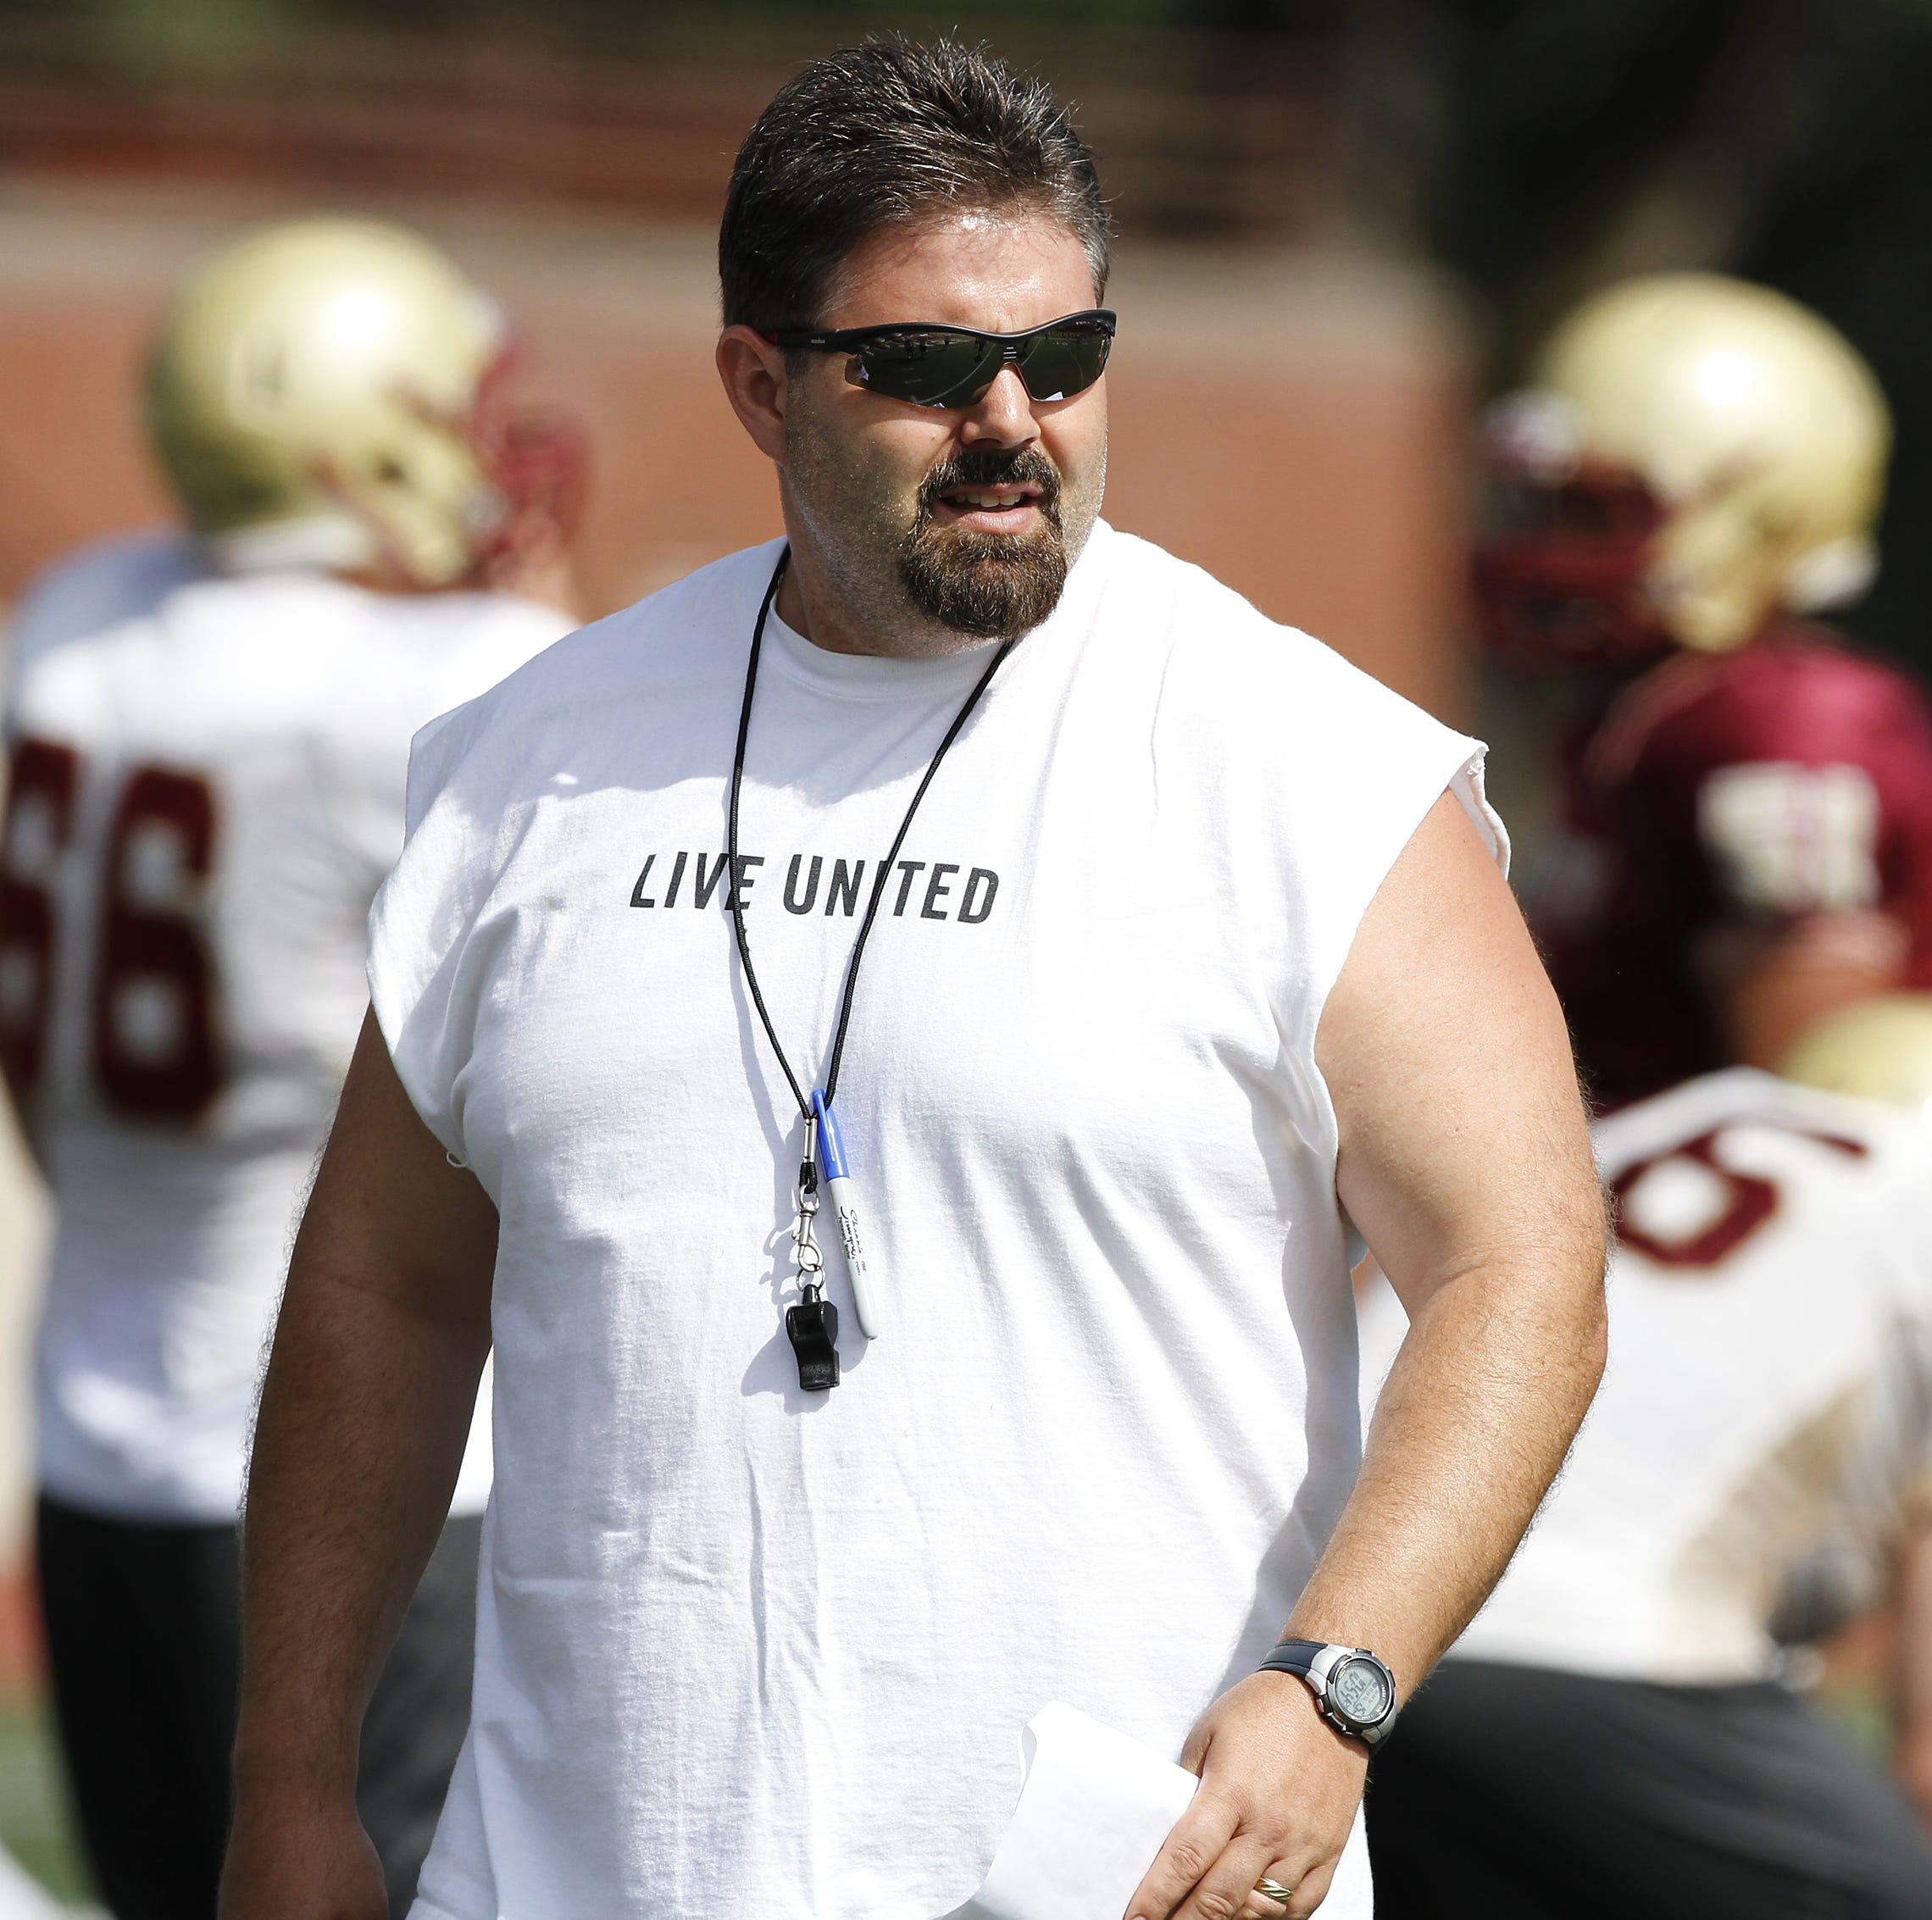 McKay hires former Willamette University football coach Glen Fowles